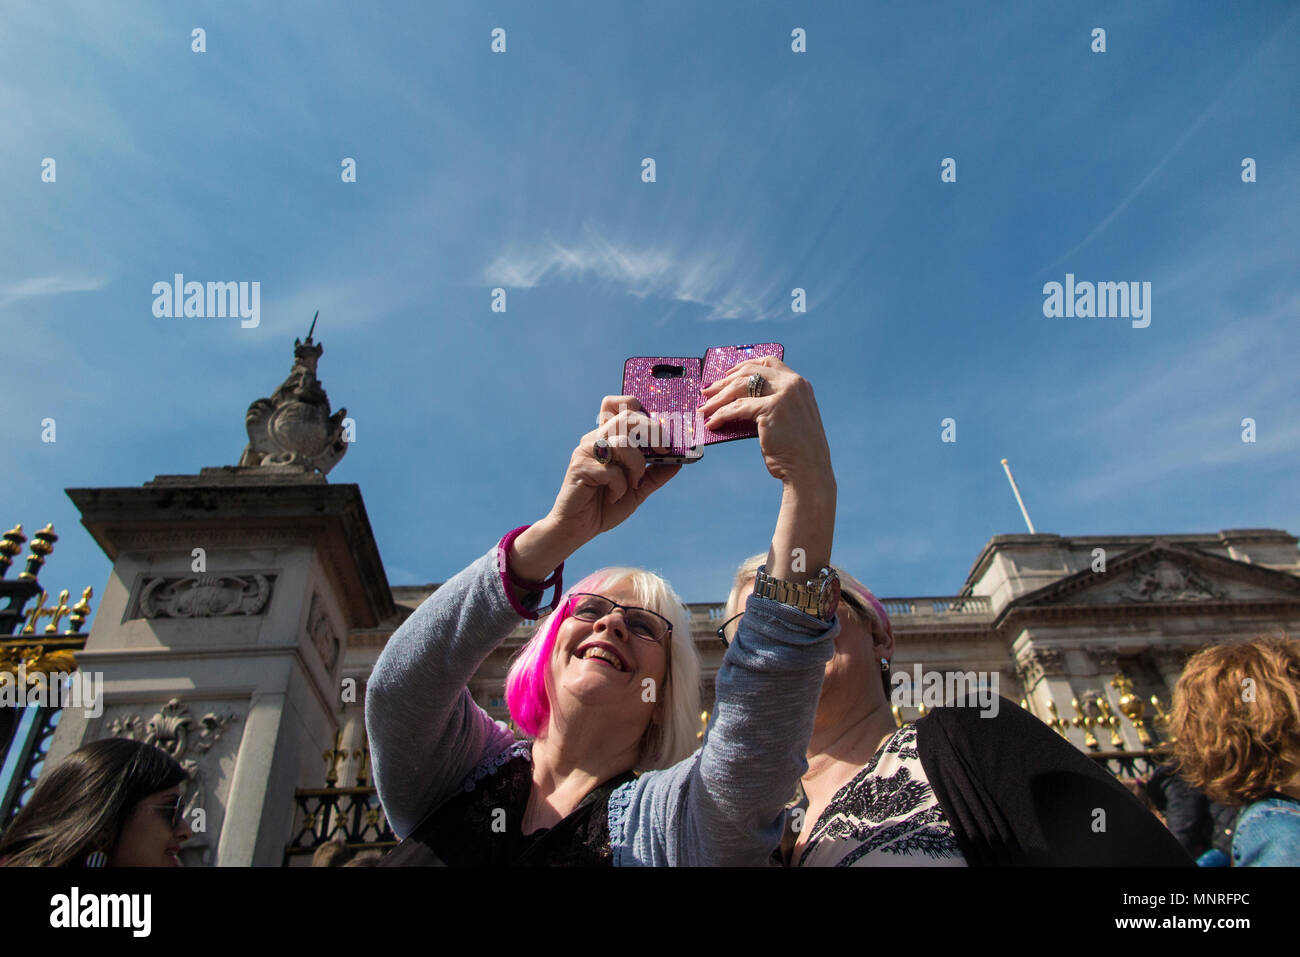 Two ladies with pink hair take a selfie and pictures of an event at Buckingham Palace - Stock Image